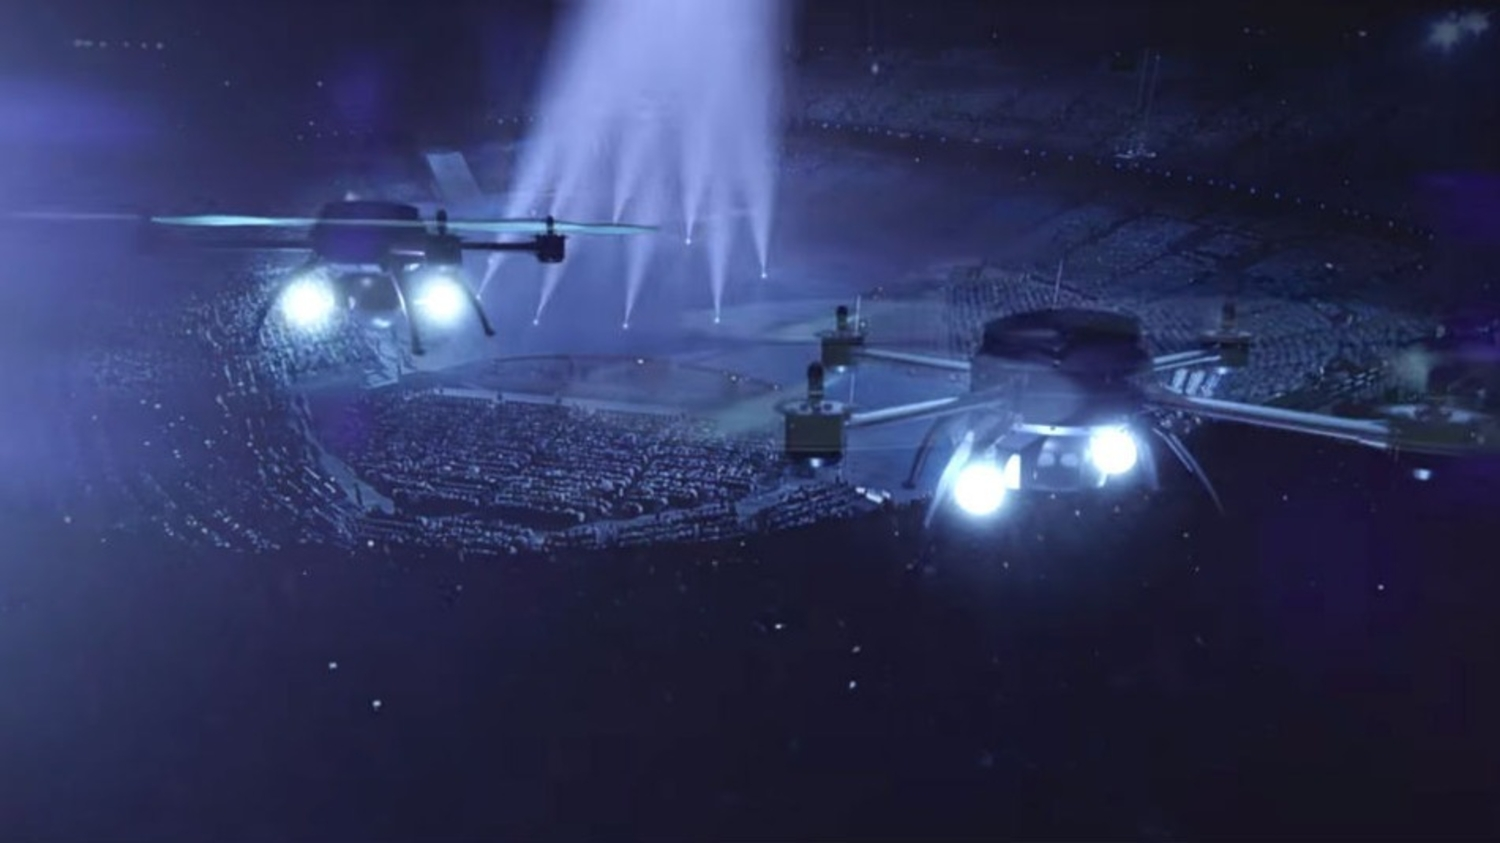 The World's First Drone Show